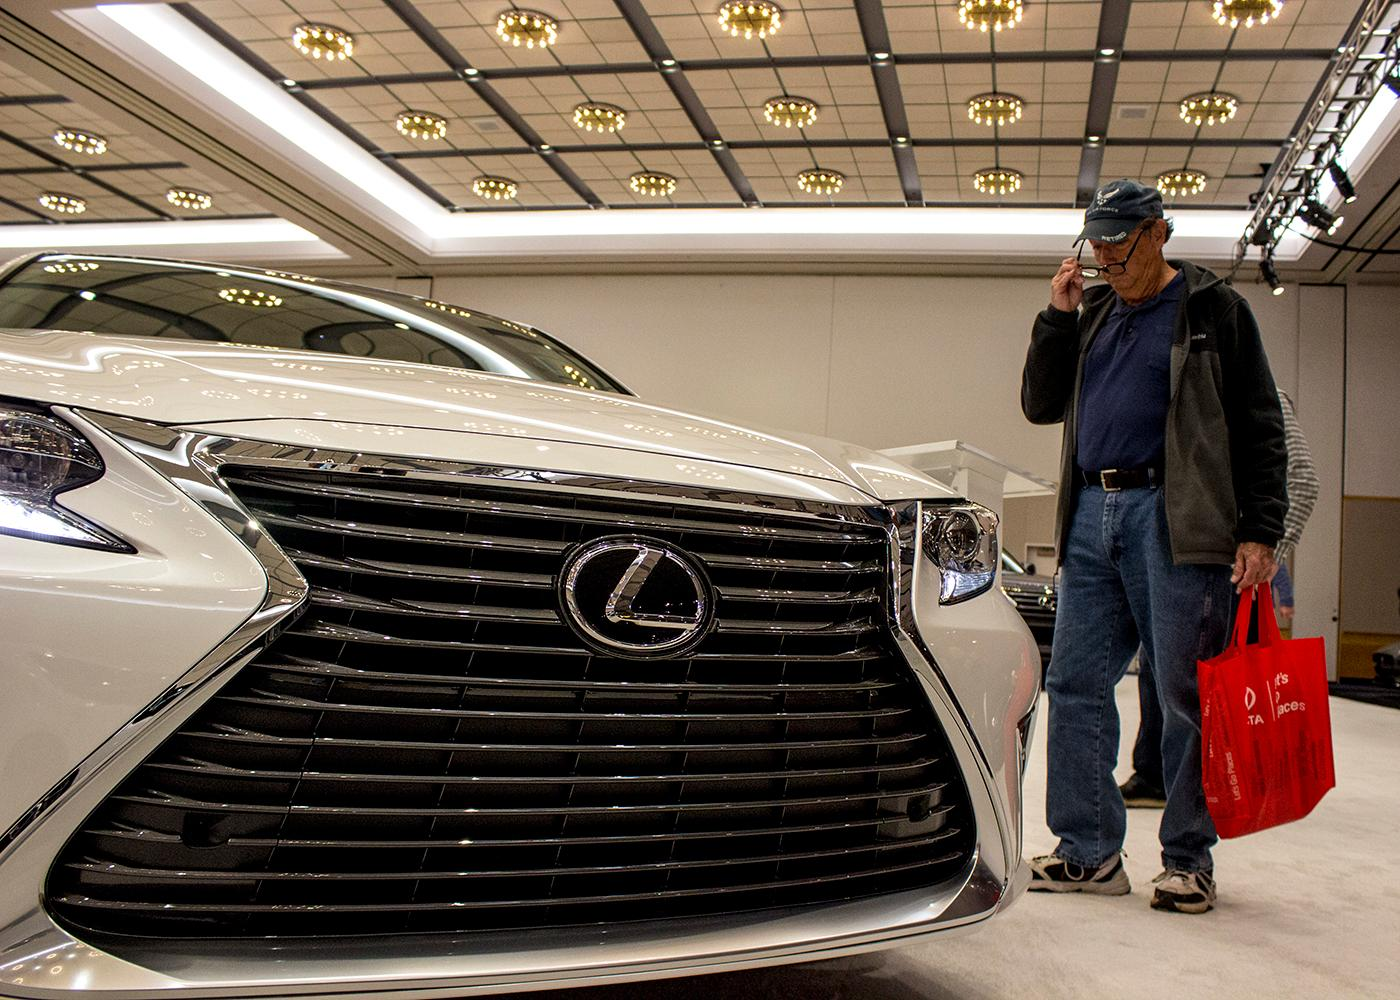 Lexus 2018 ES 350 - The Portland International Auto Show began at the Oregon Convention Center on Jan. 25, 2018. The event drew prospective buyers and others who enjoyed looking at and comparing vehicles. Photo by Amanda Butt